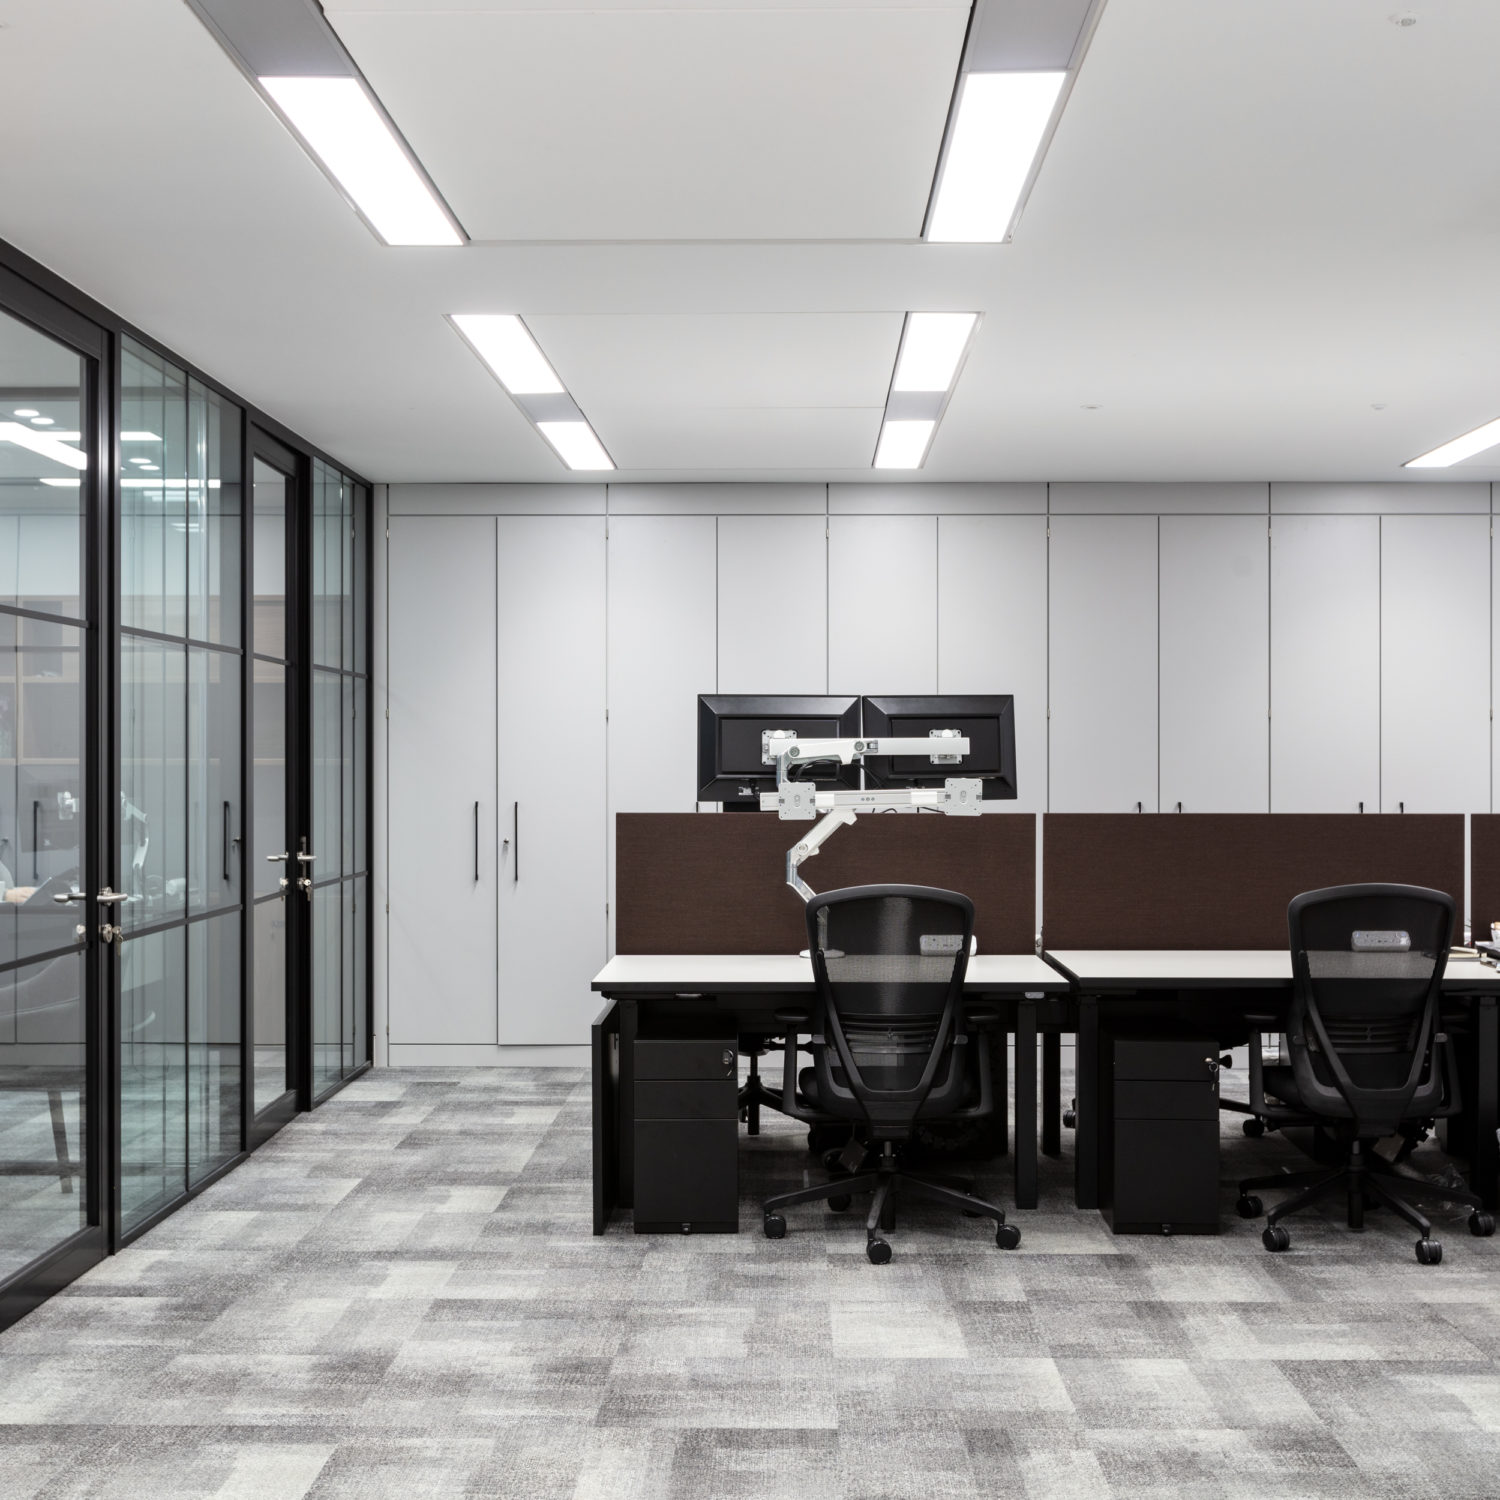 workstations with a minimal modern aesthetic